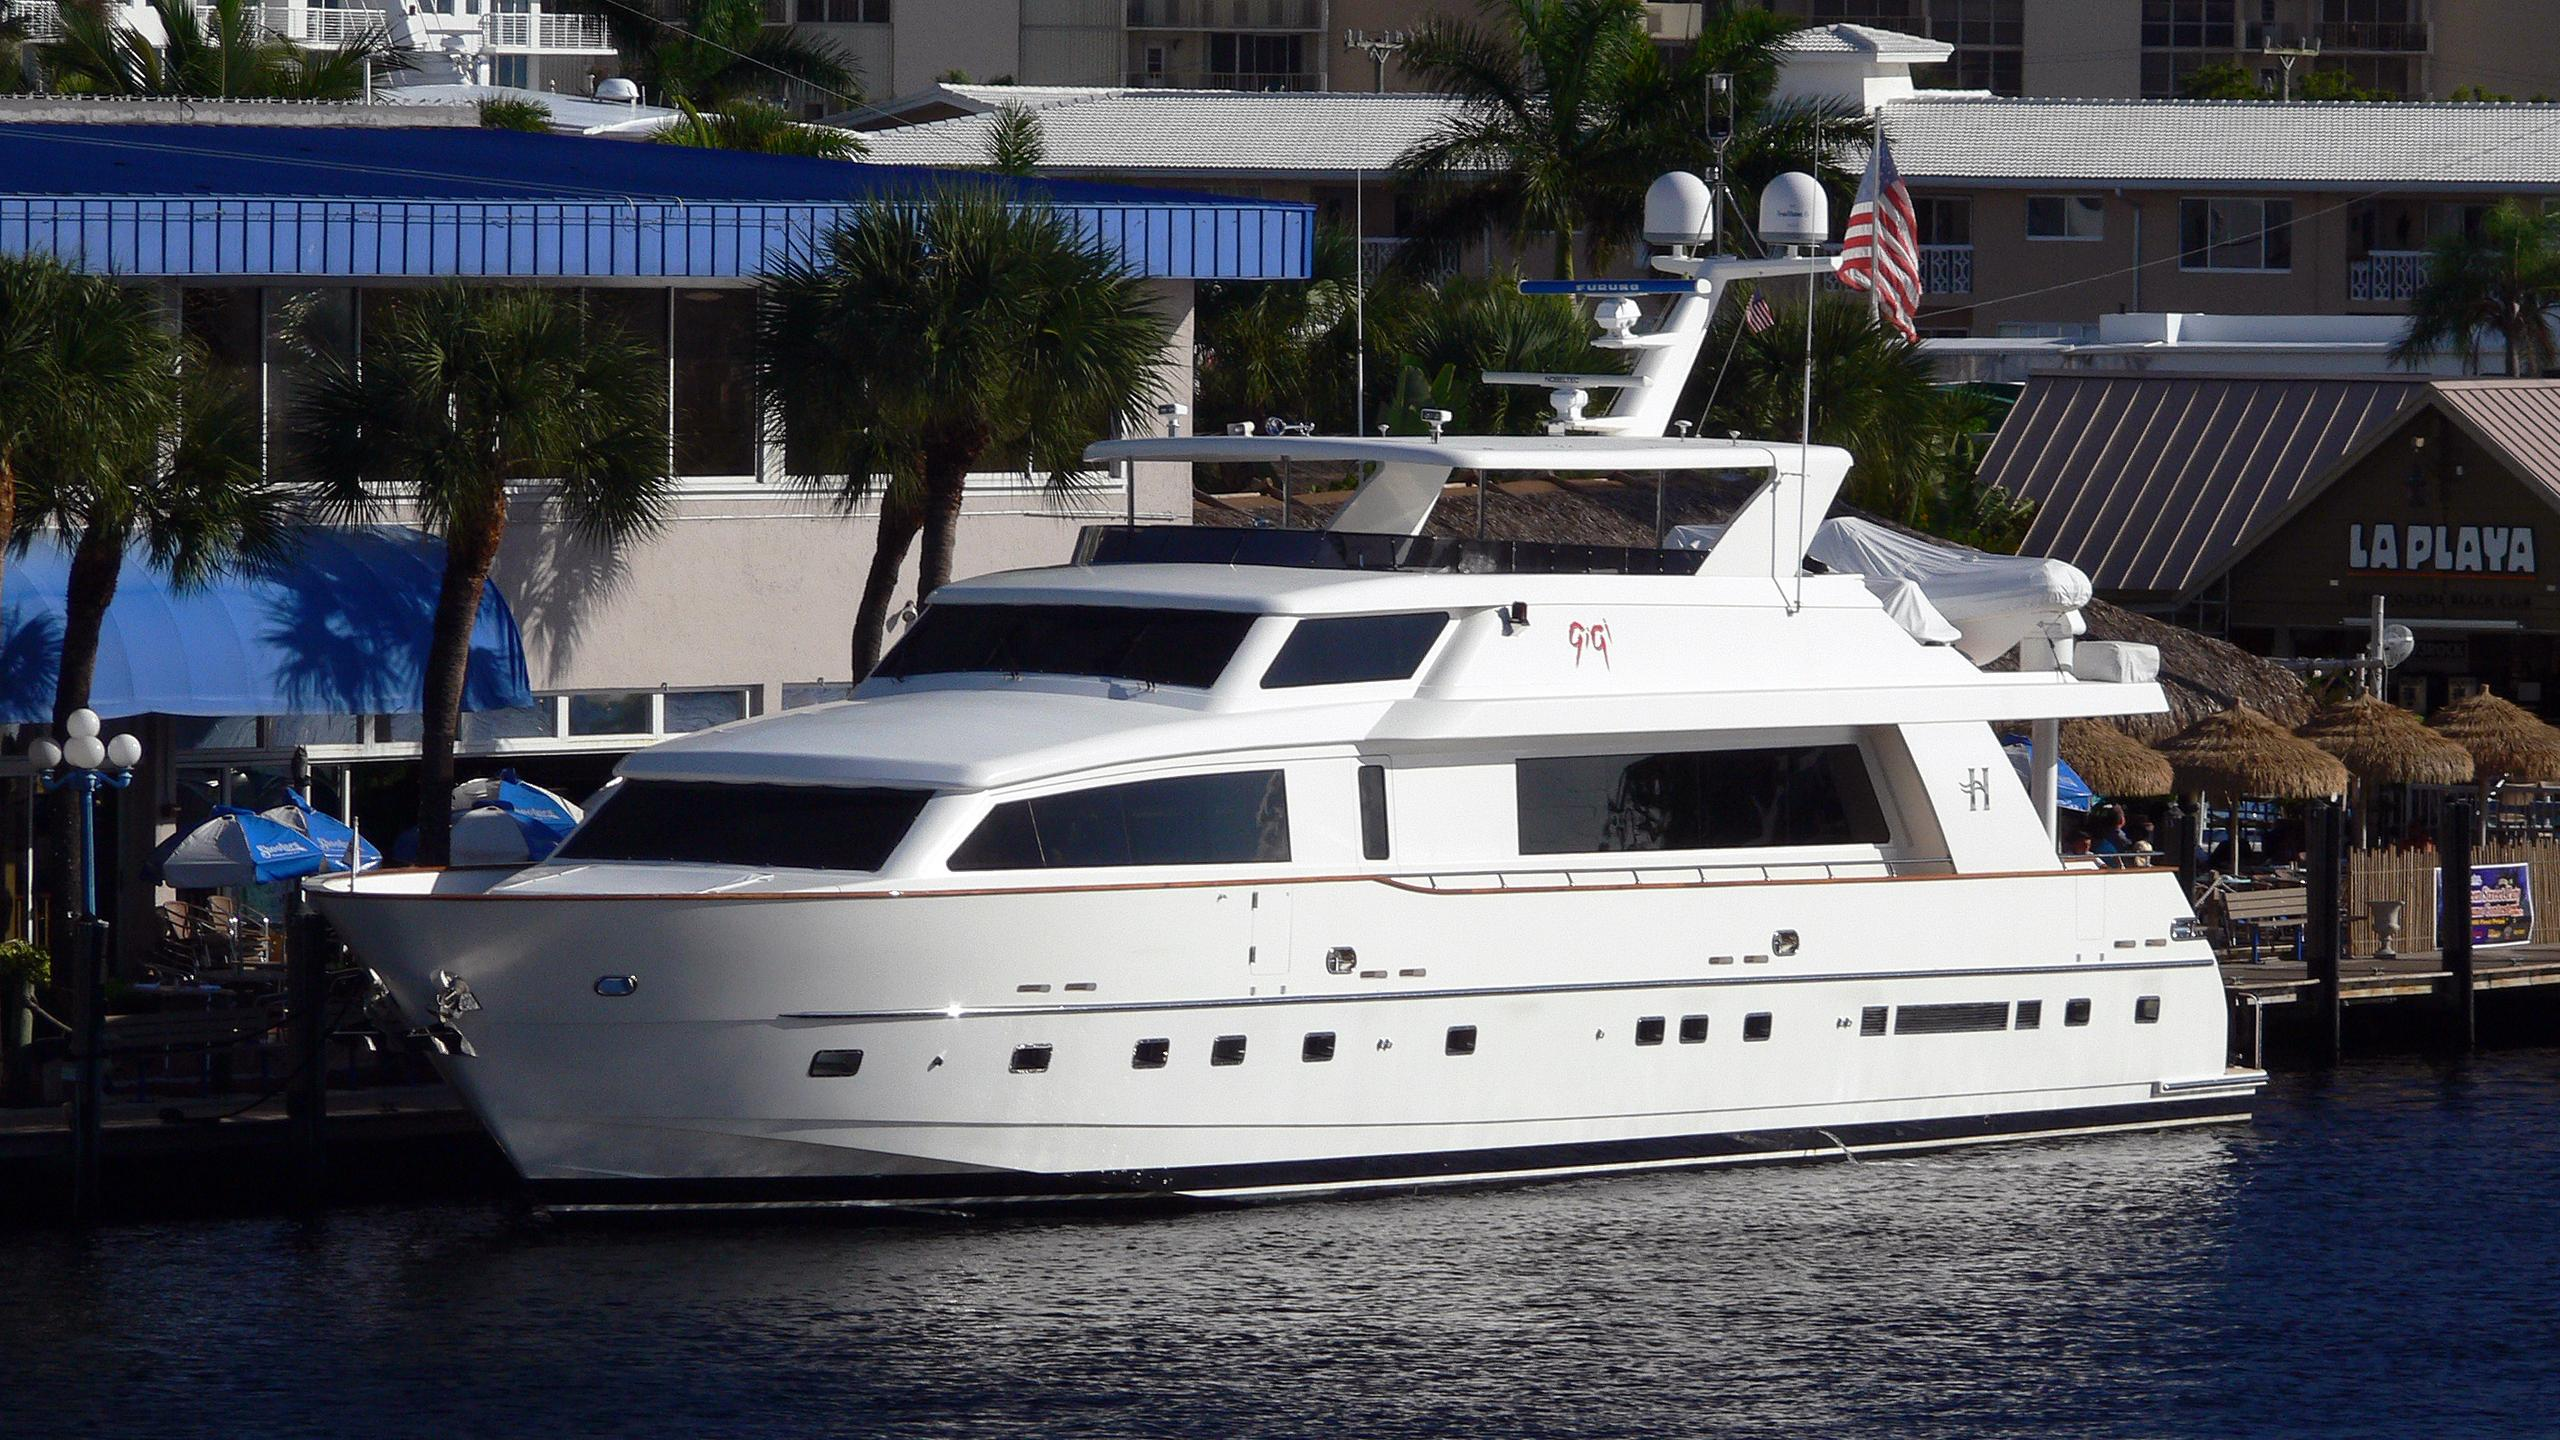 next-chapter-motor-yacht-hargrave-97-rph-2004-30m-profile